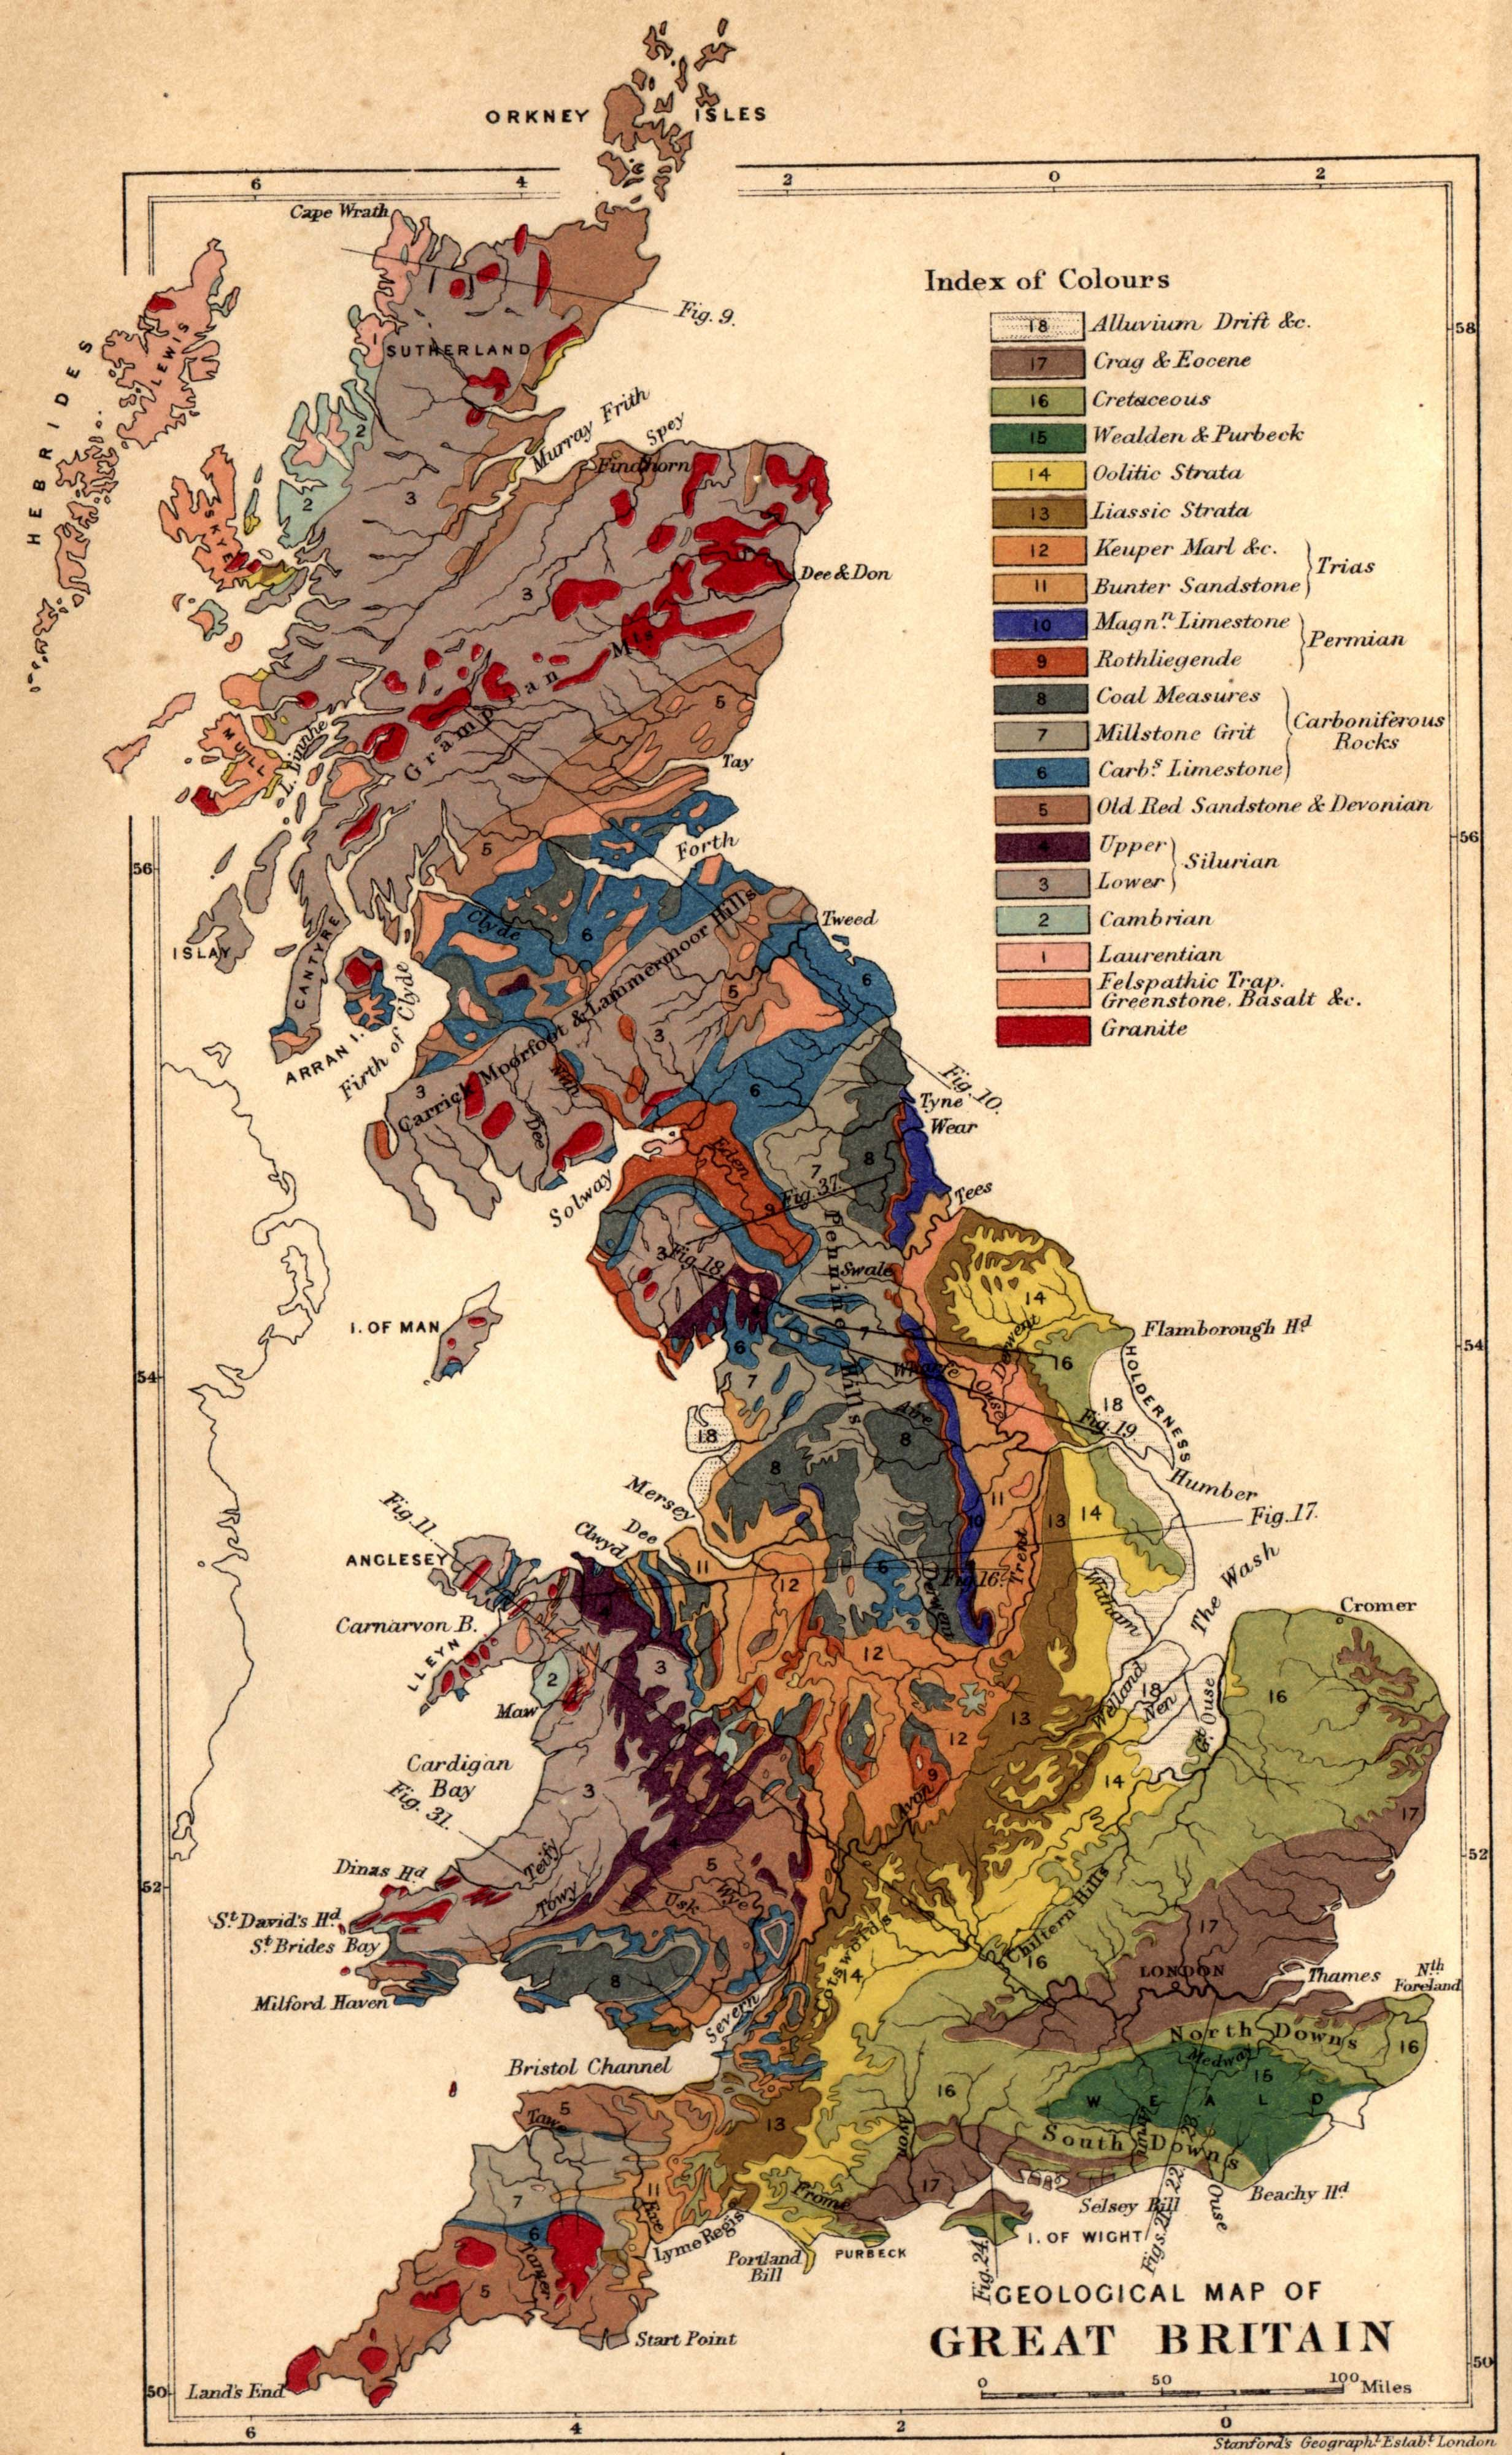 Geological Map of Great Britain Created in 1878 by Edward